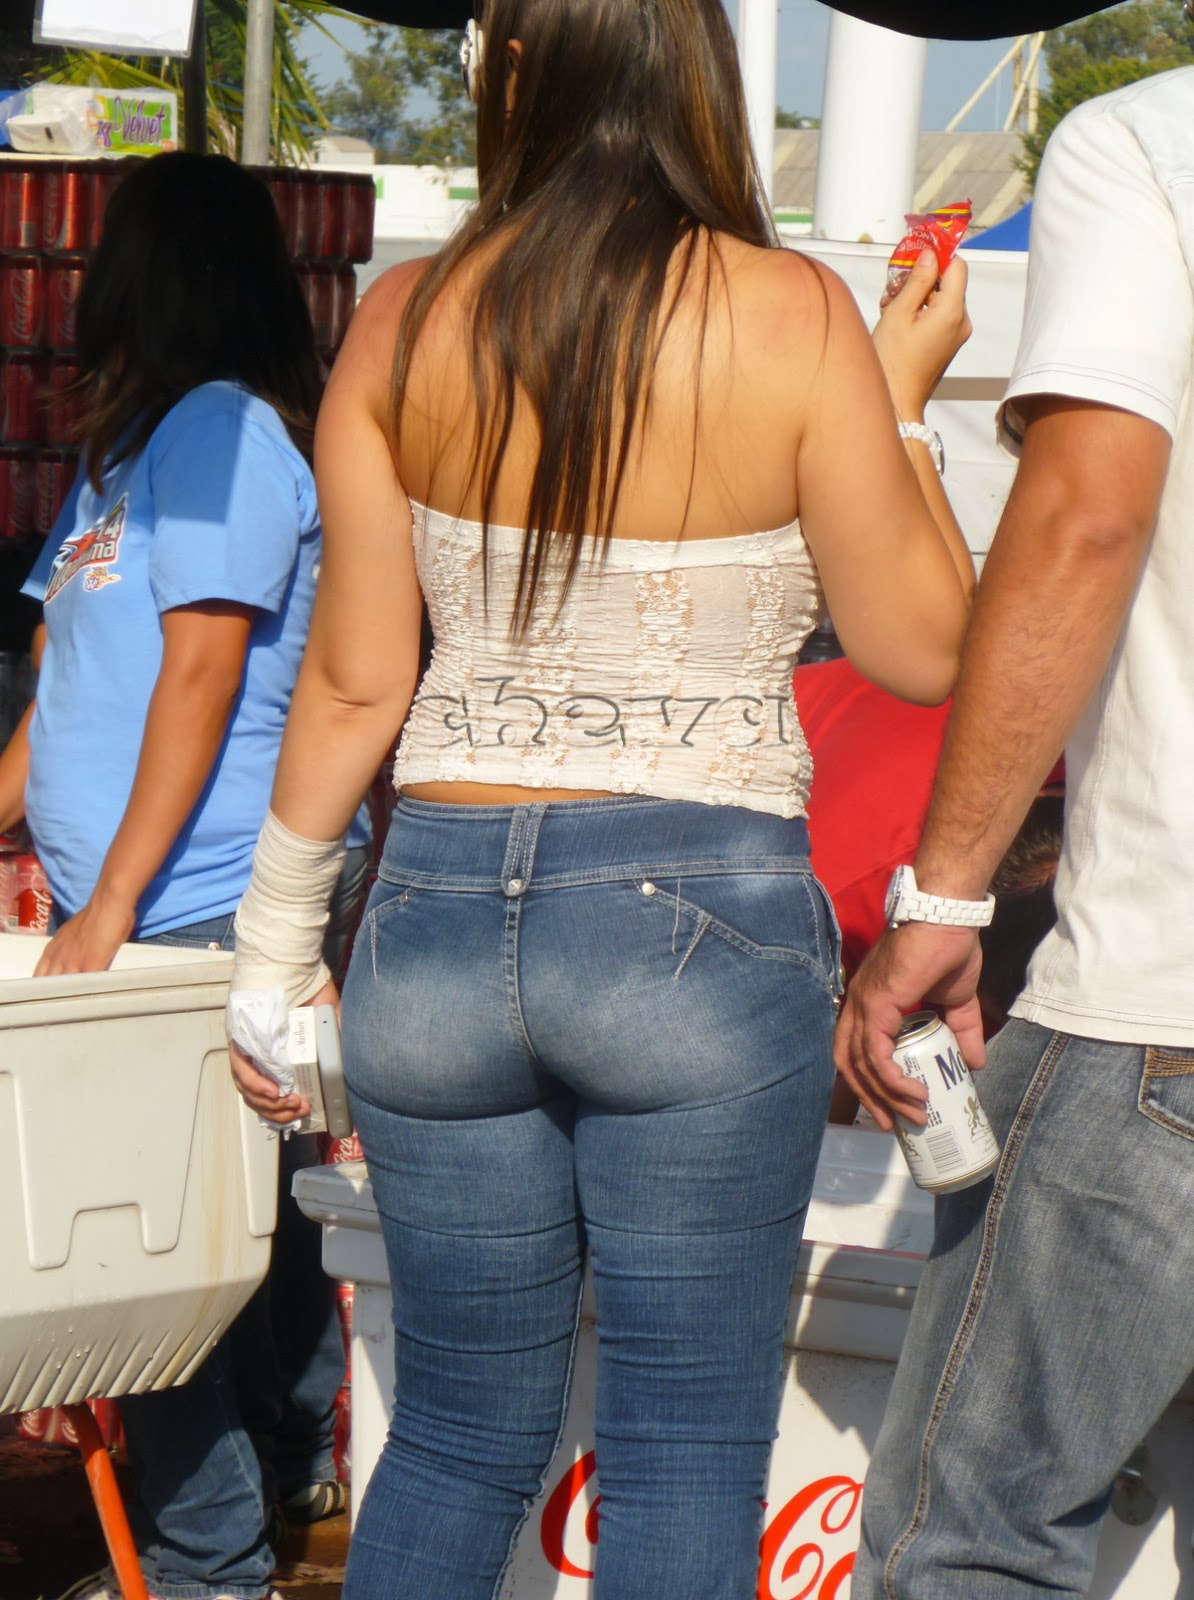 sexy girls on the street girls in jeans spandex and leggings tight